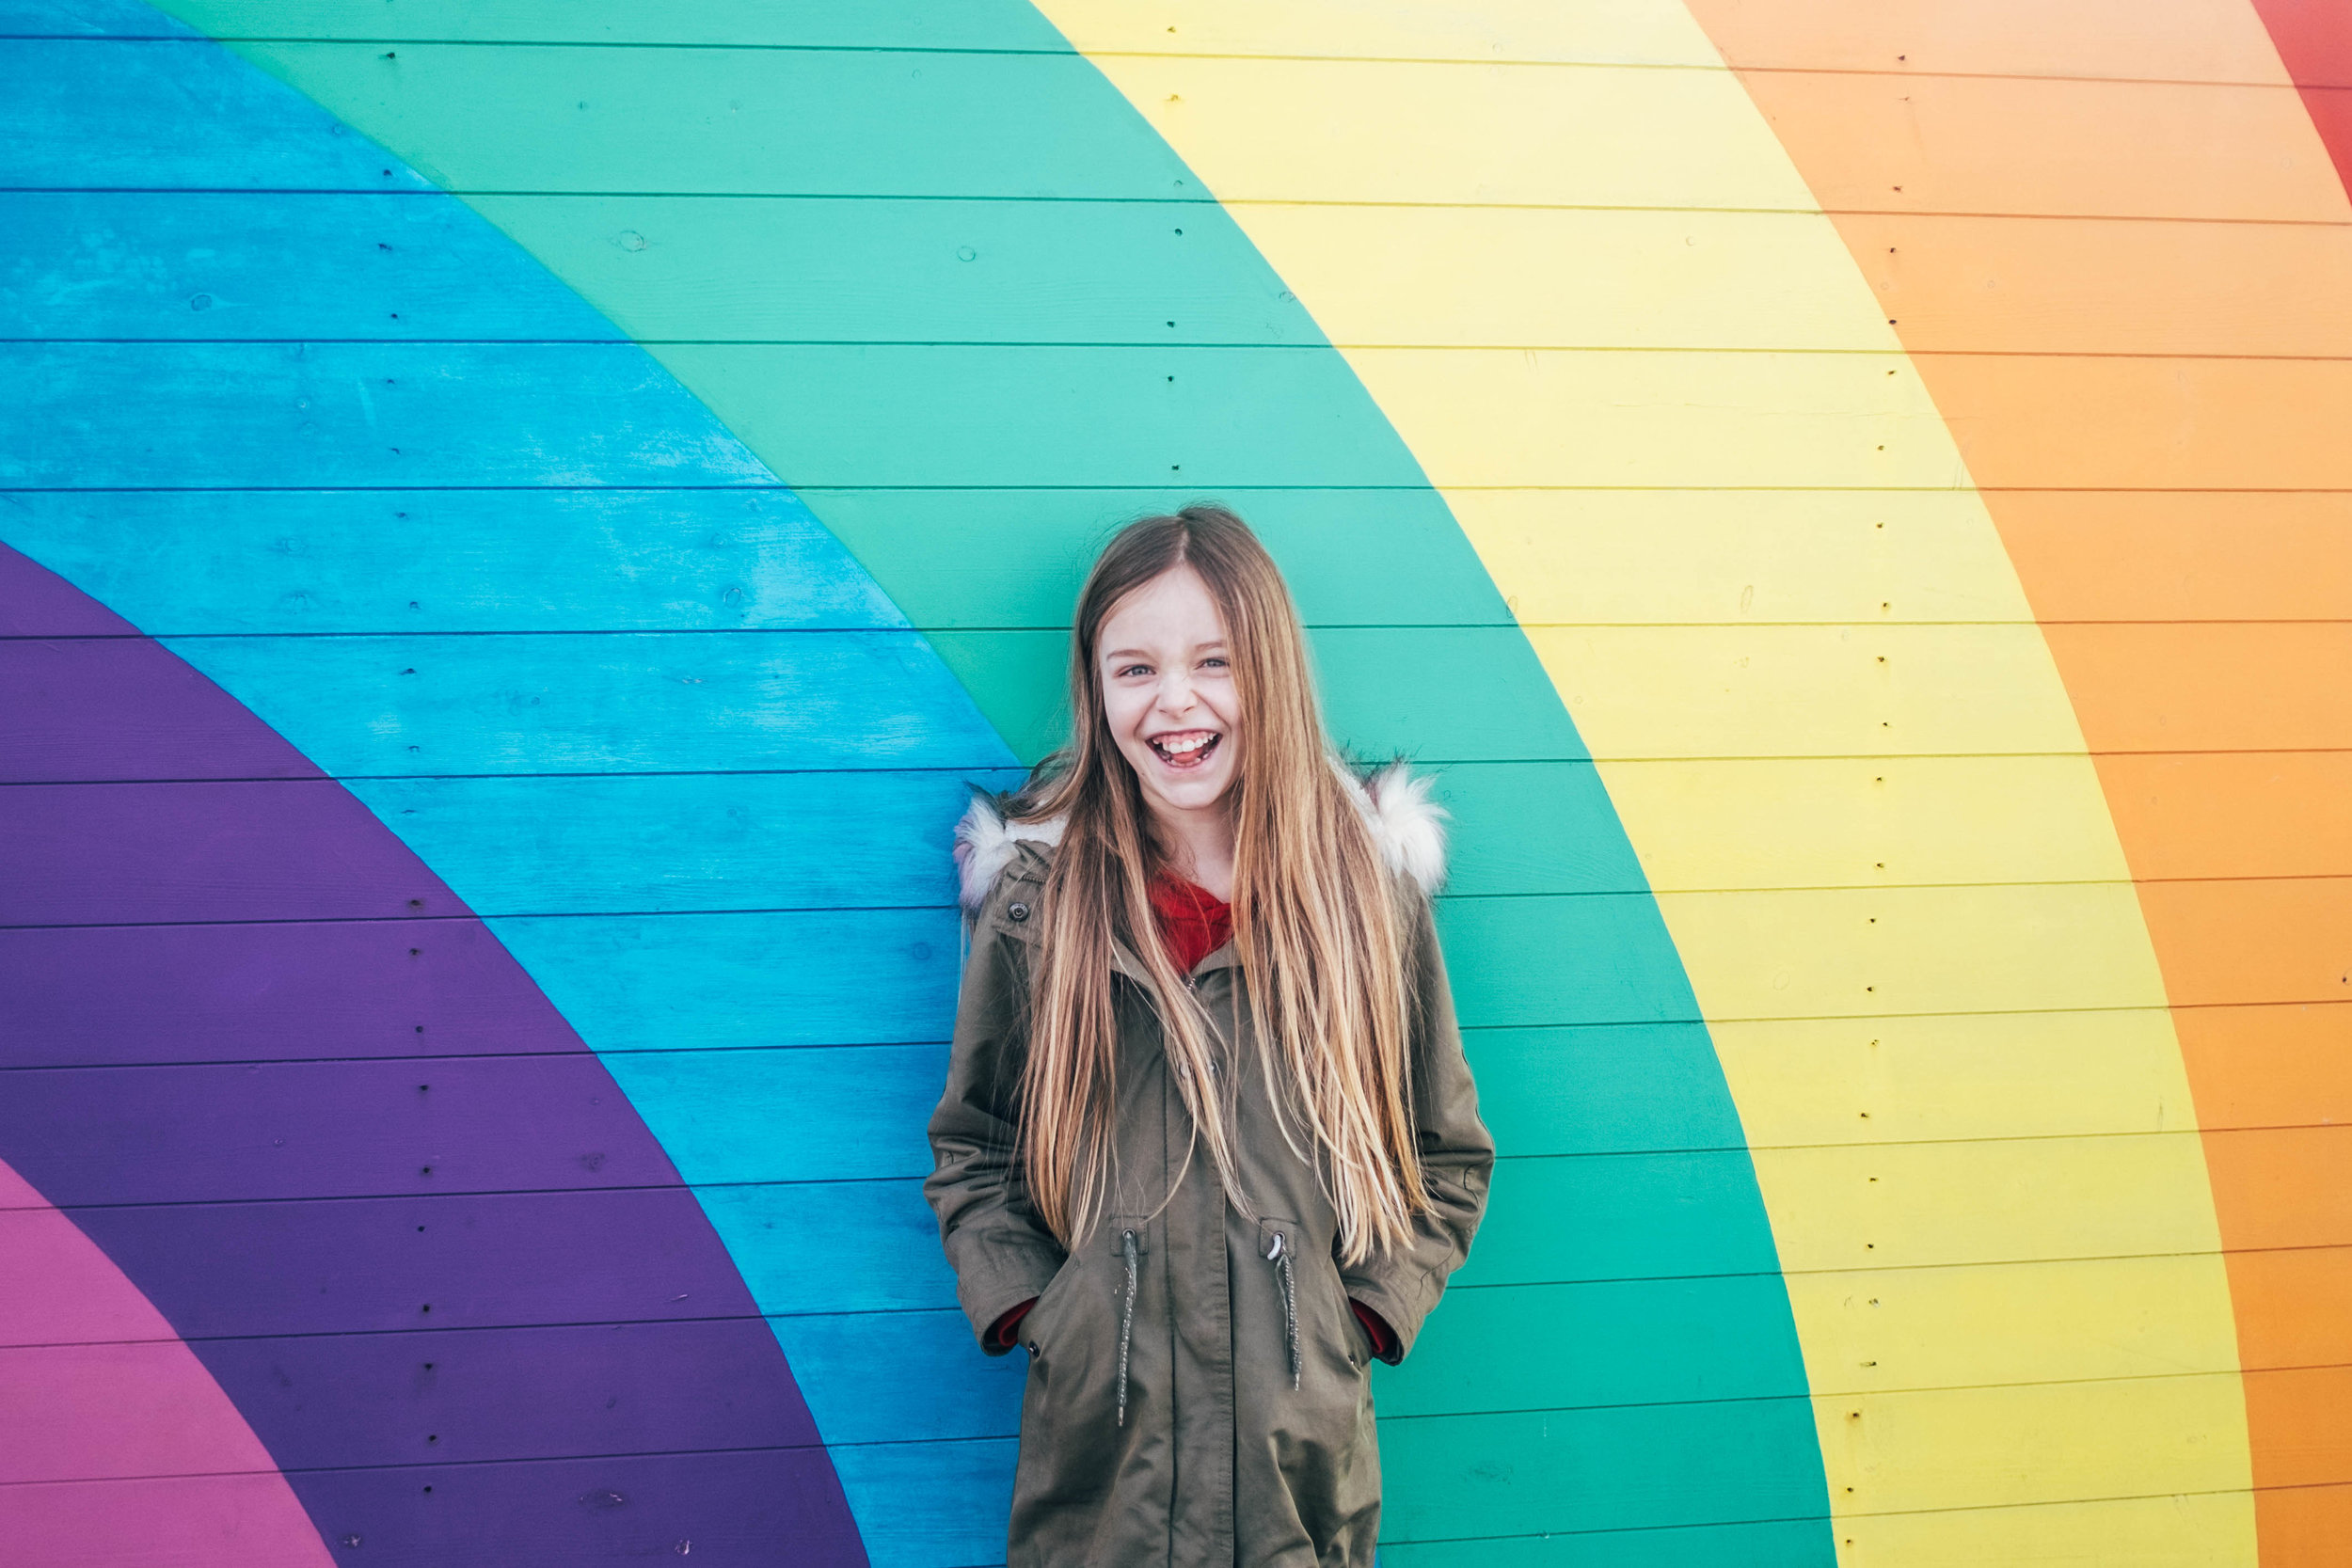 Little girl smiles agains rainbow wall Southend Pier Essex Documentary Wedding & Portrait Photographer